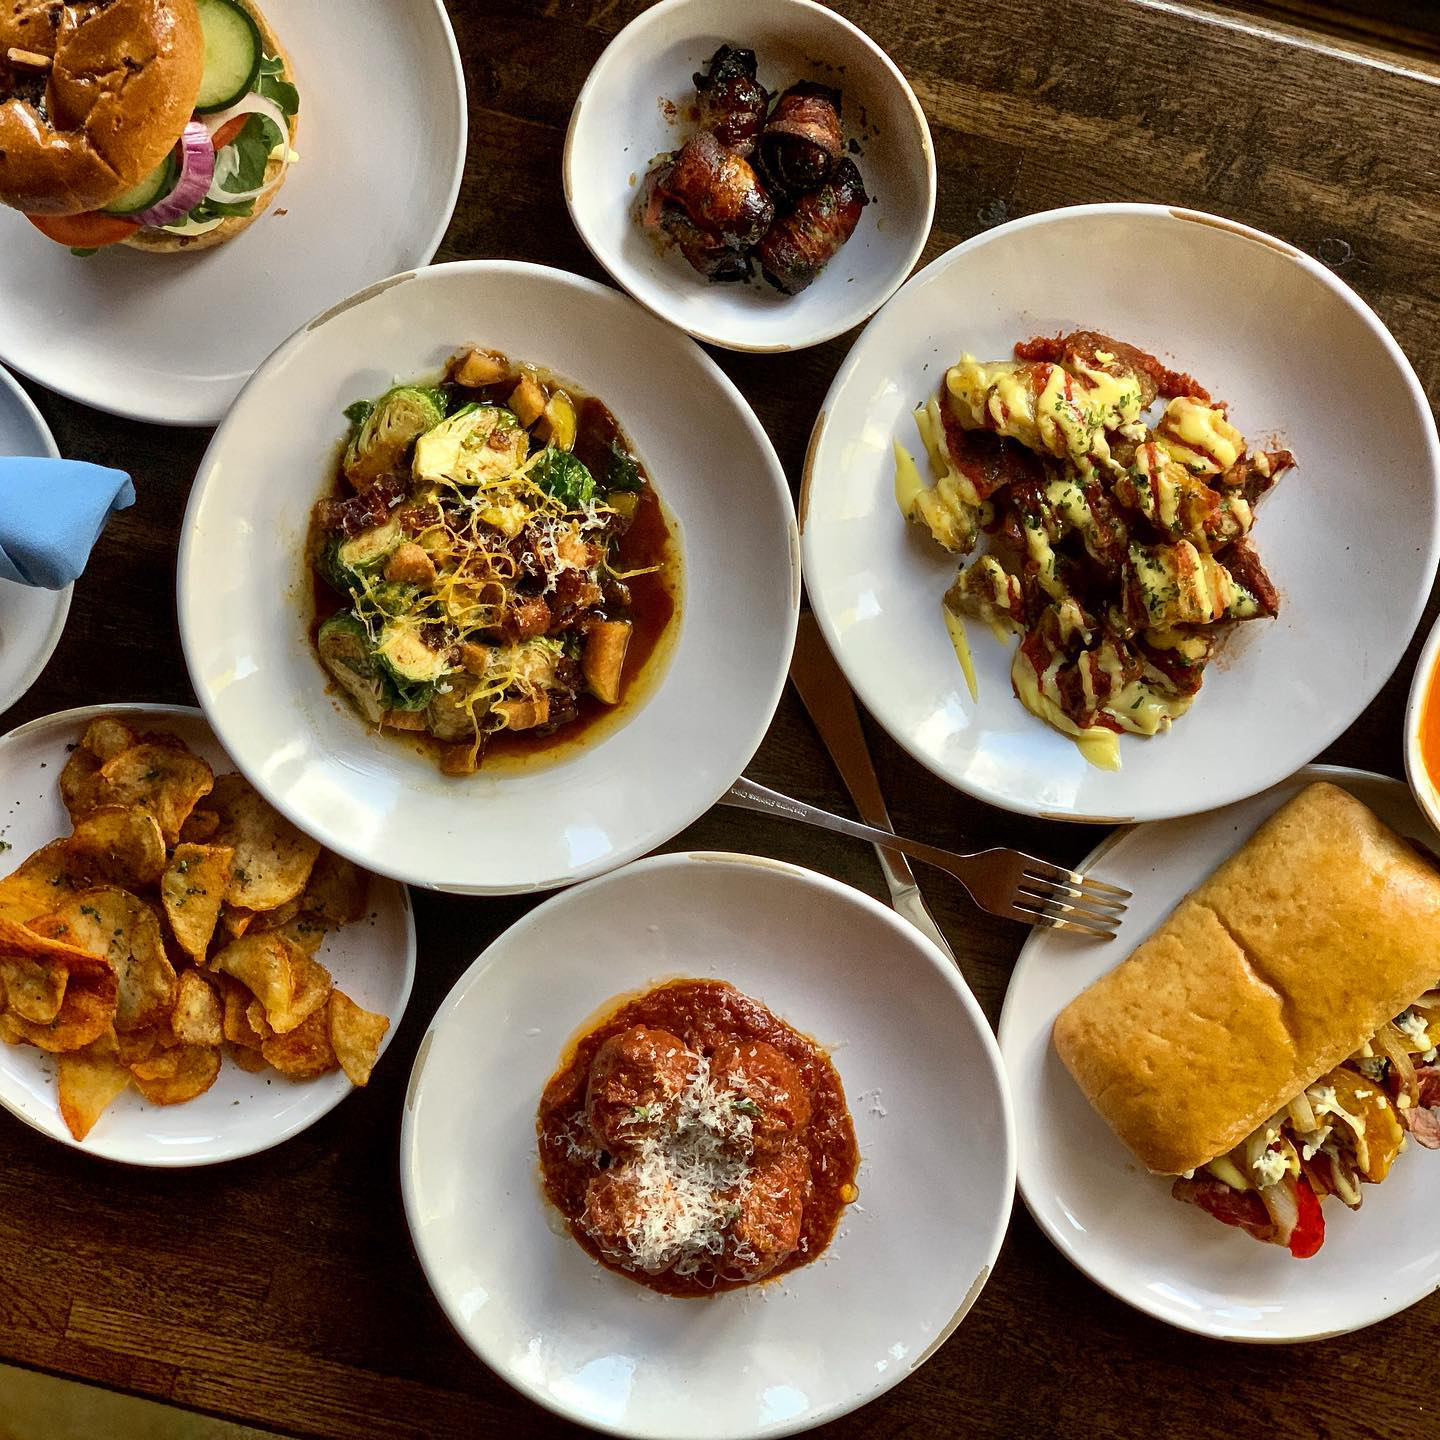 Dishes from Frog & the Bull